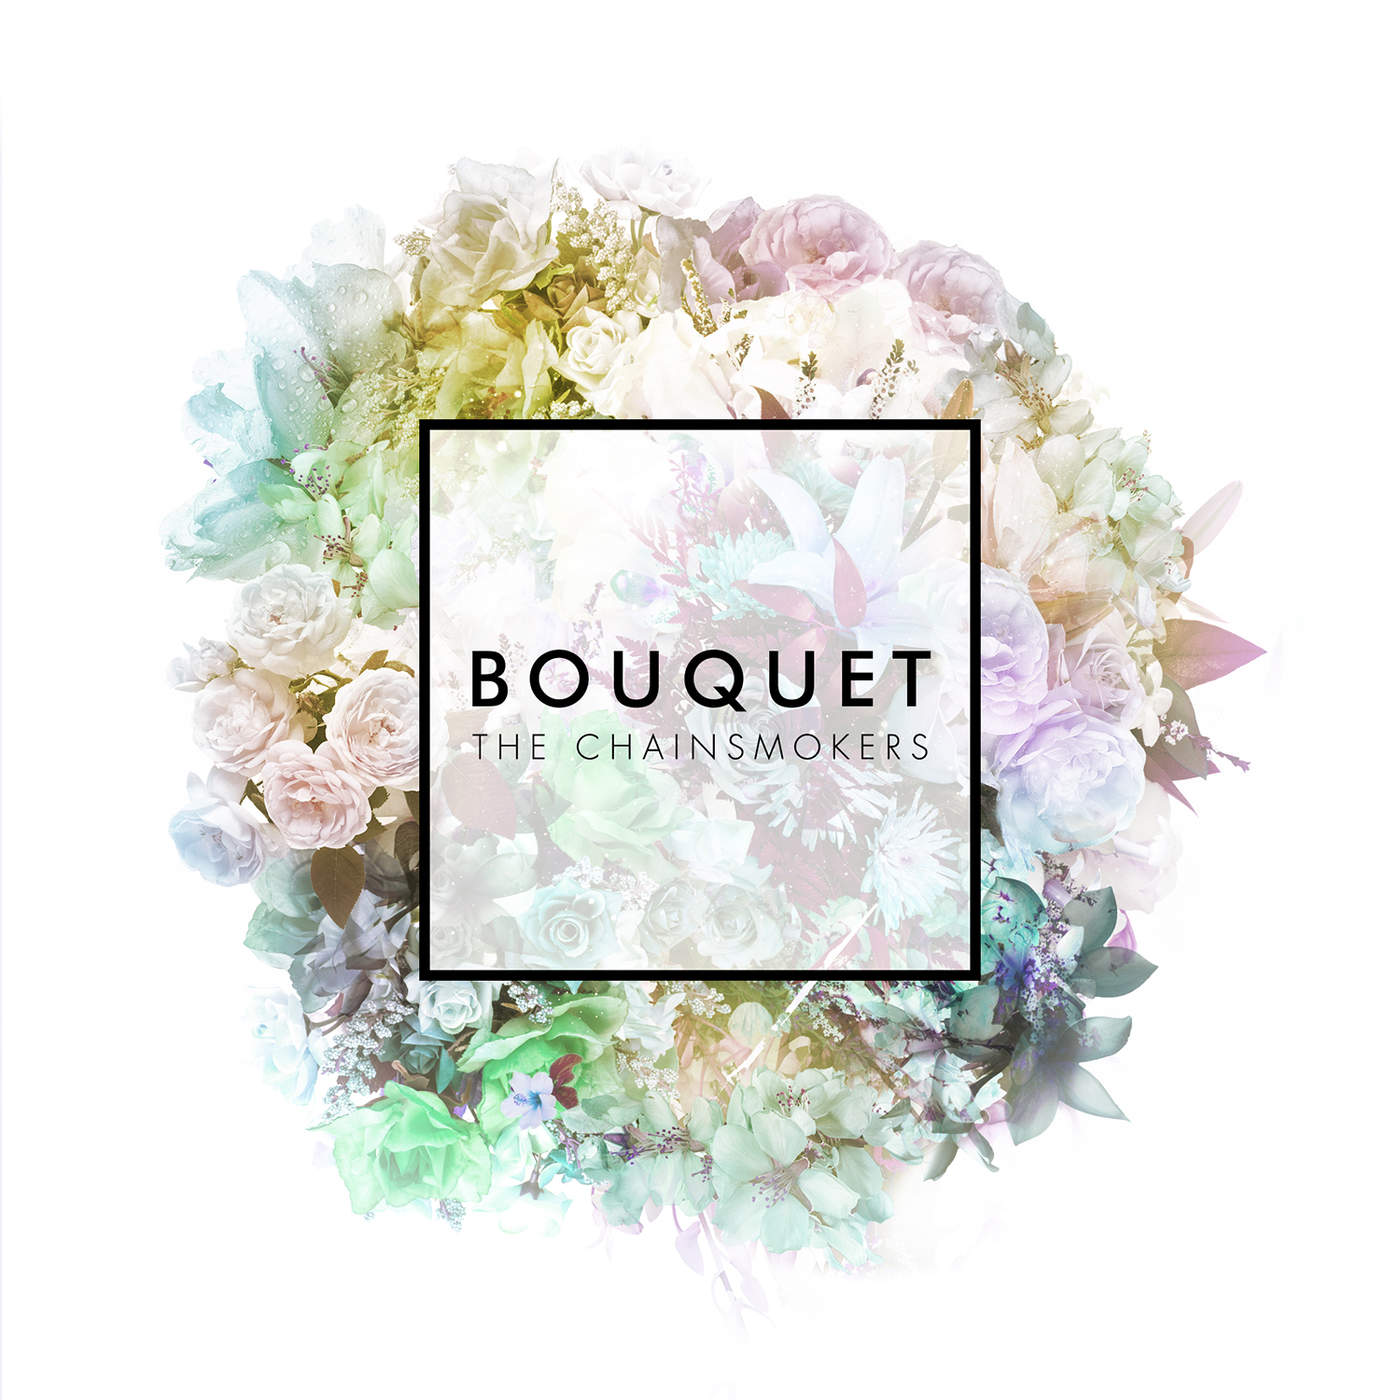 The Chainsmokers - Bouquet - EP Cover